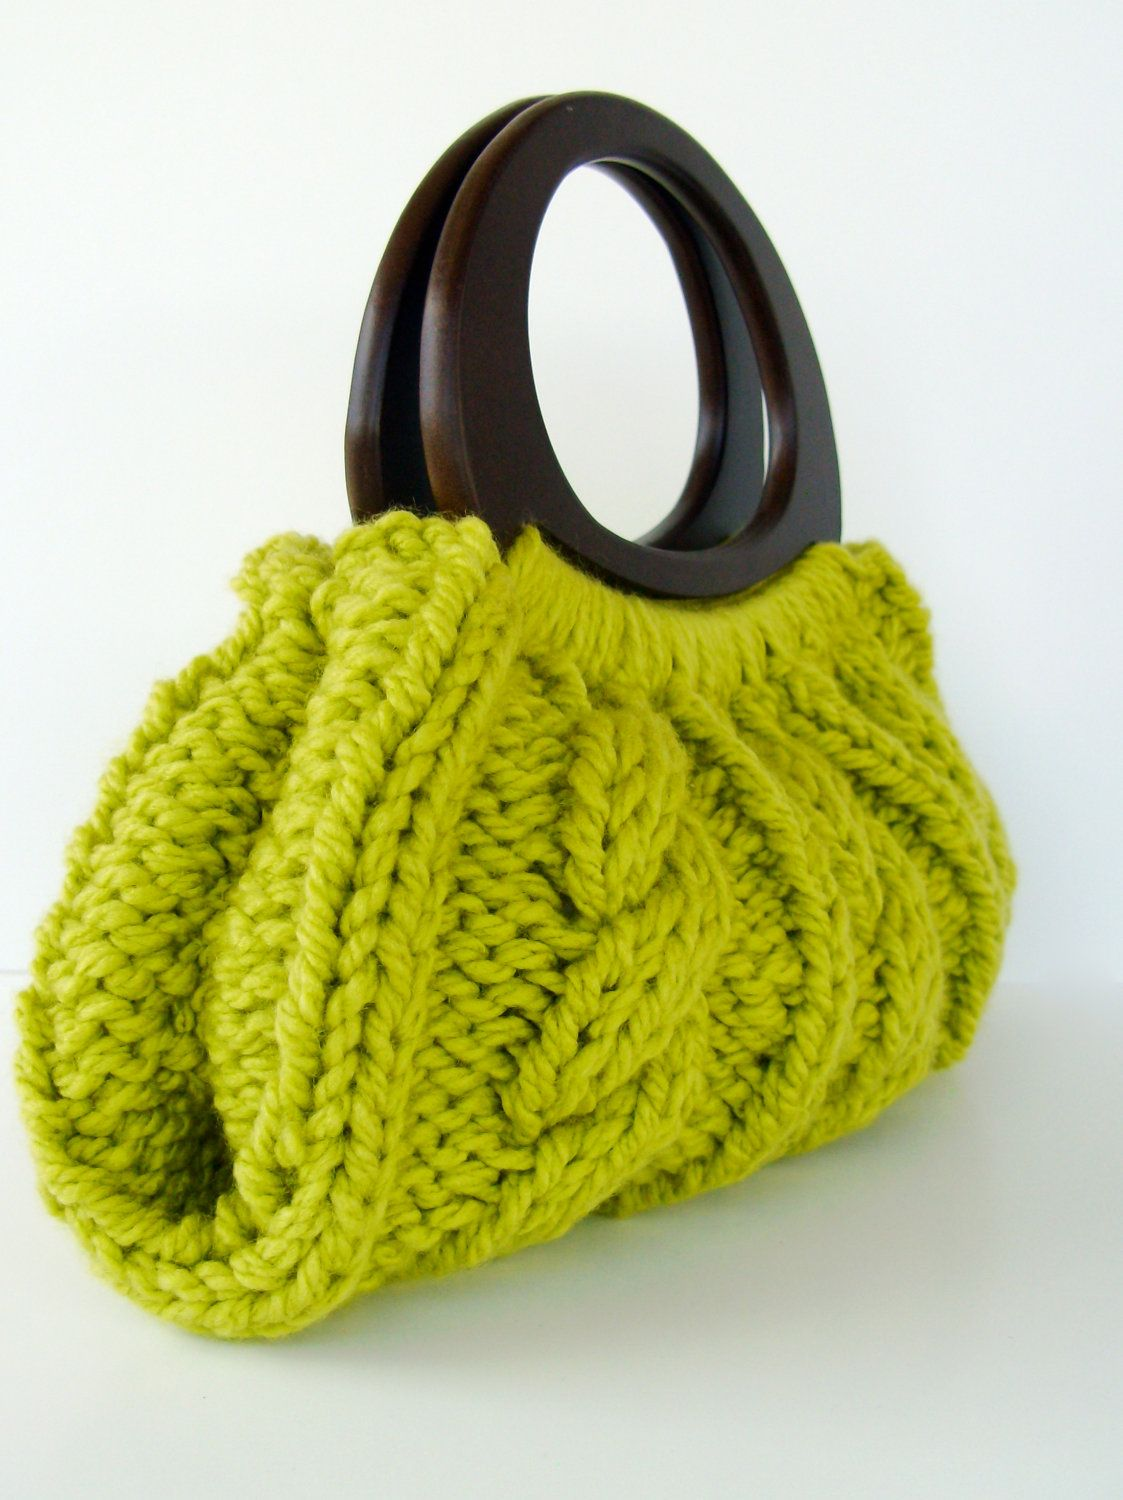 Cable Knit Purse With Wooden Handles Pear Green 3 Love It Love